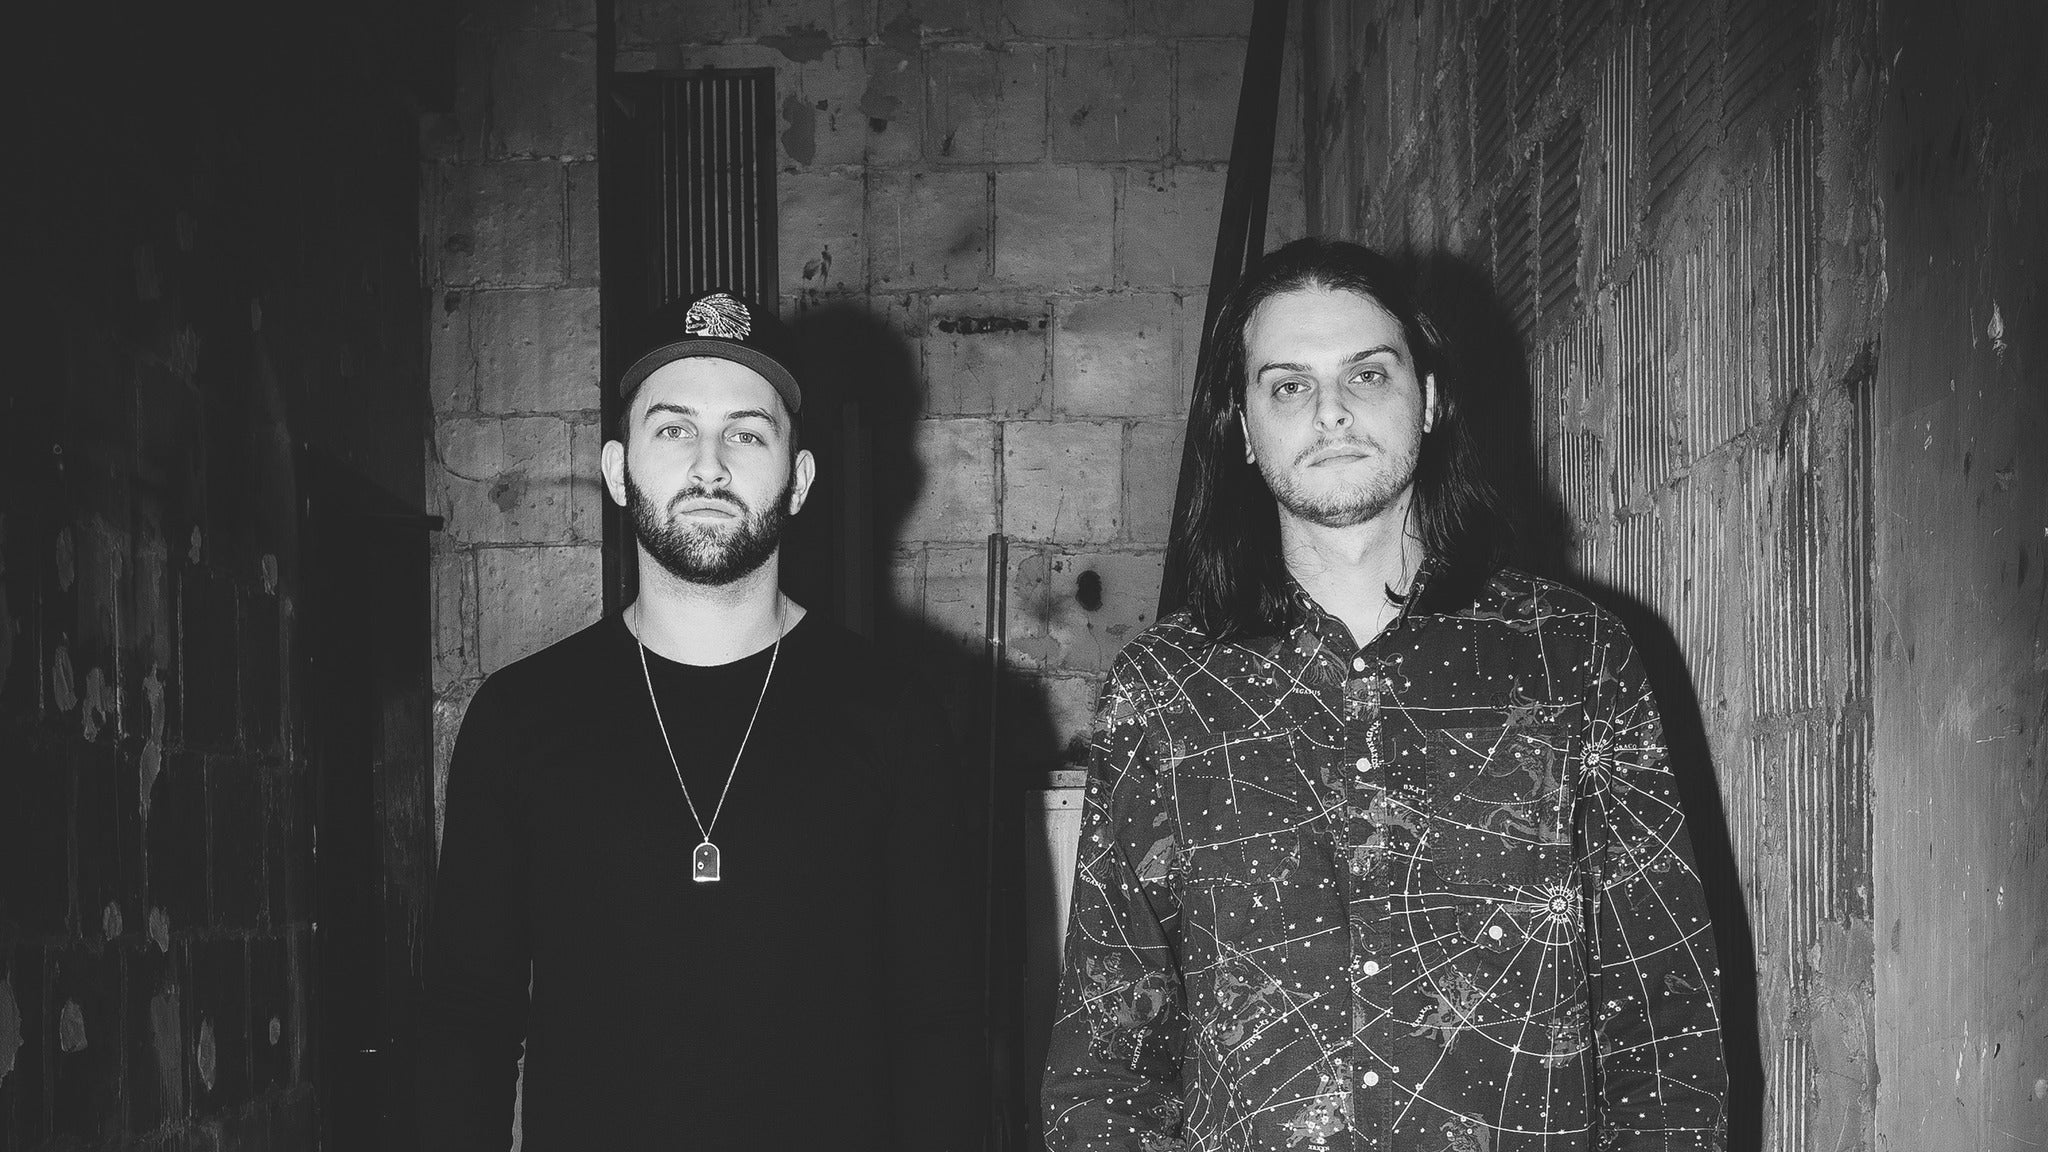 Zeds Dead at The Bomb Factory